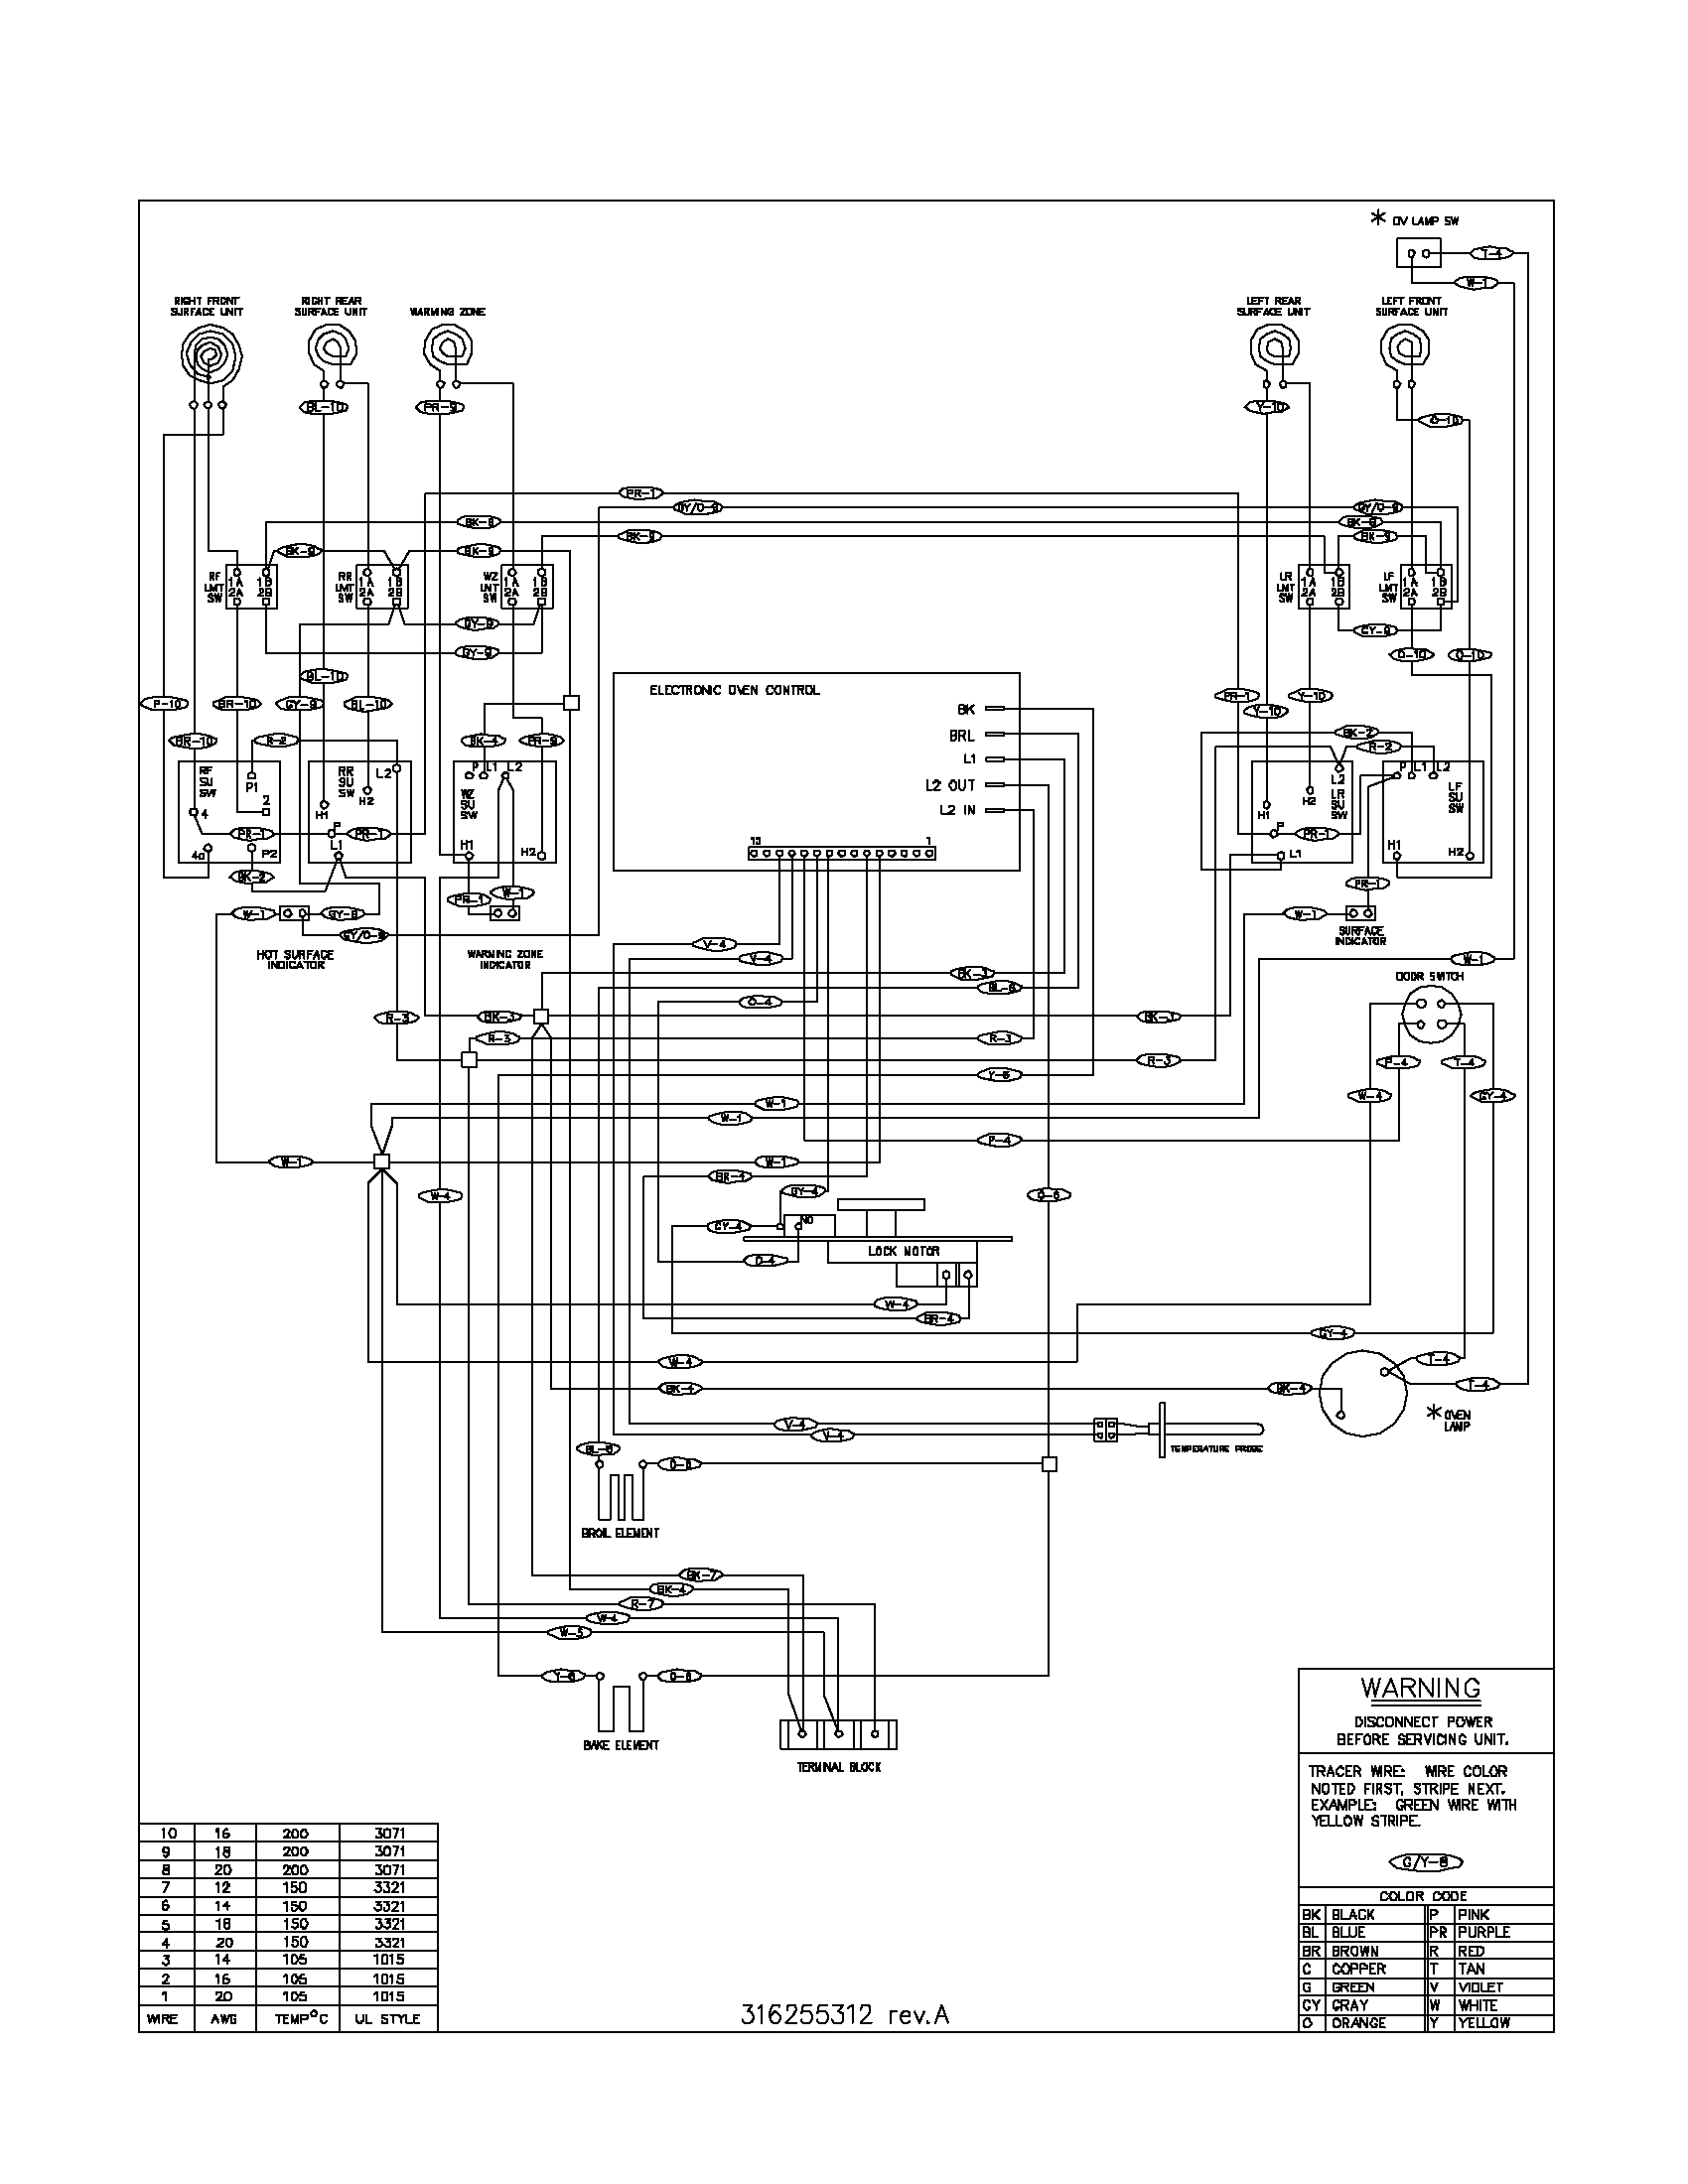 westinghouse oven element wiring diagram power to light then switch frigidaire model fefb68cba free standing electric genuine parts